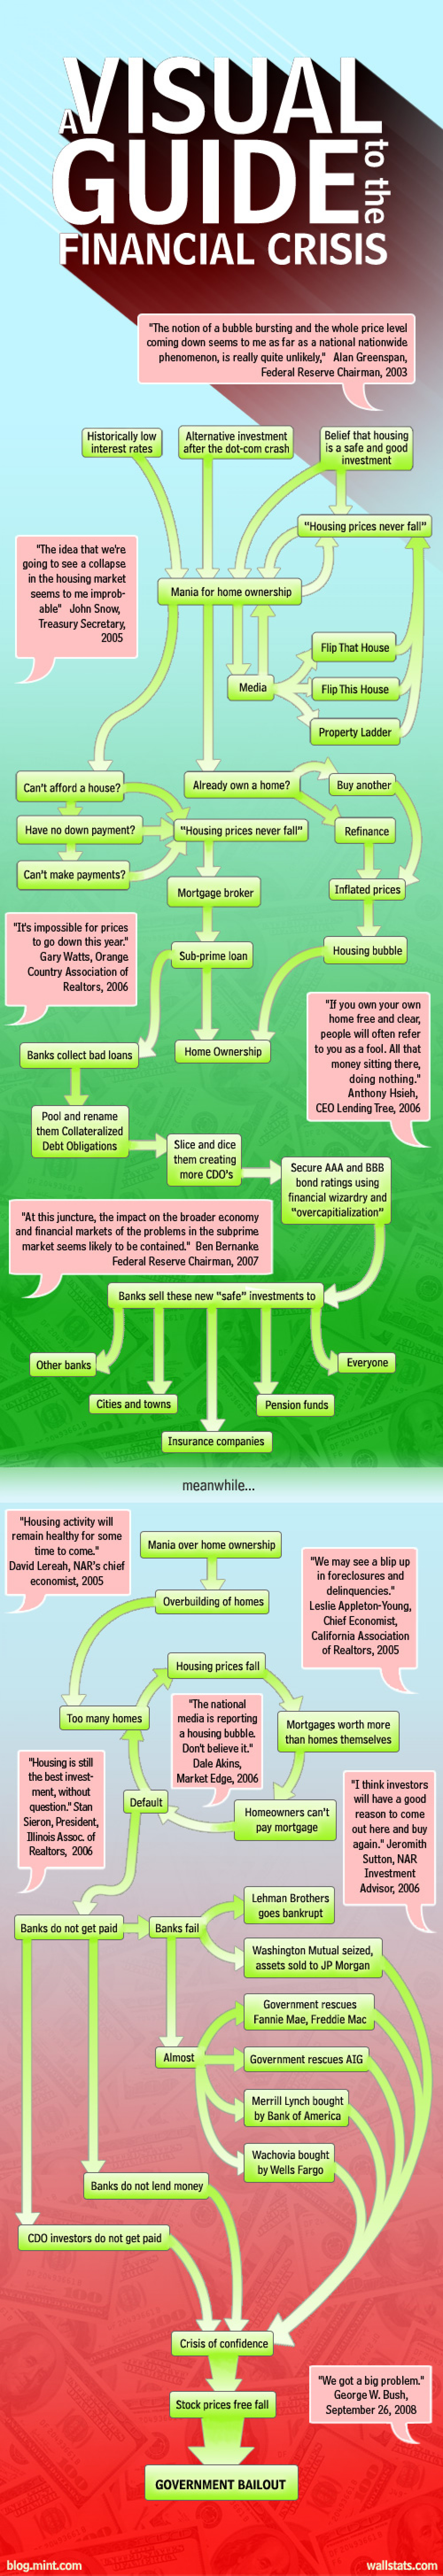 A Visual Guide to the Financial Crisis: Part 1 Infographic